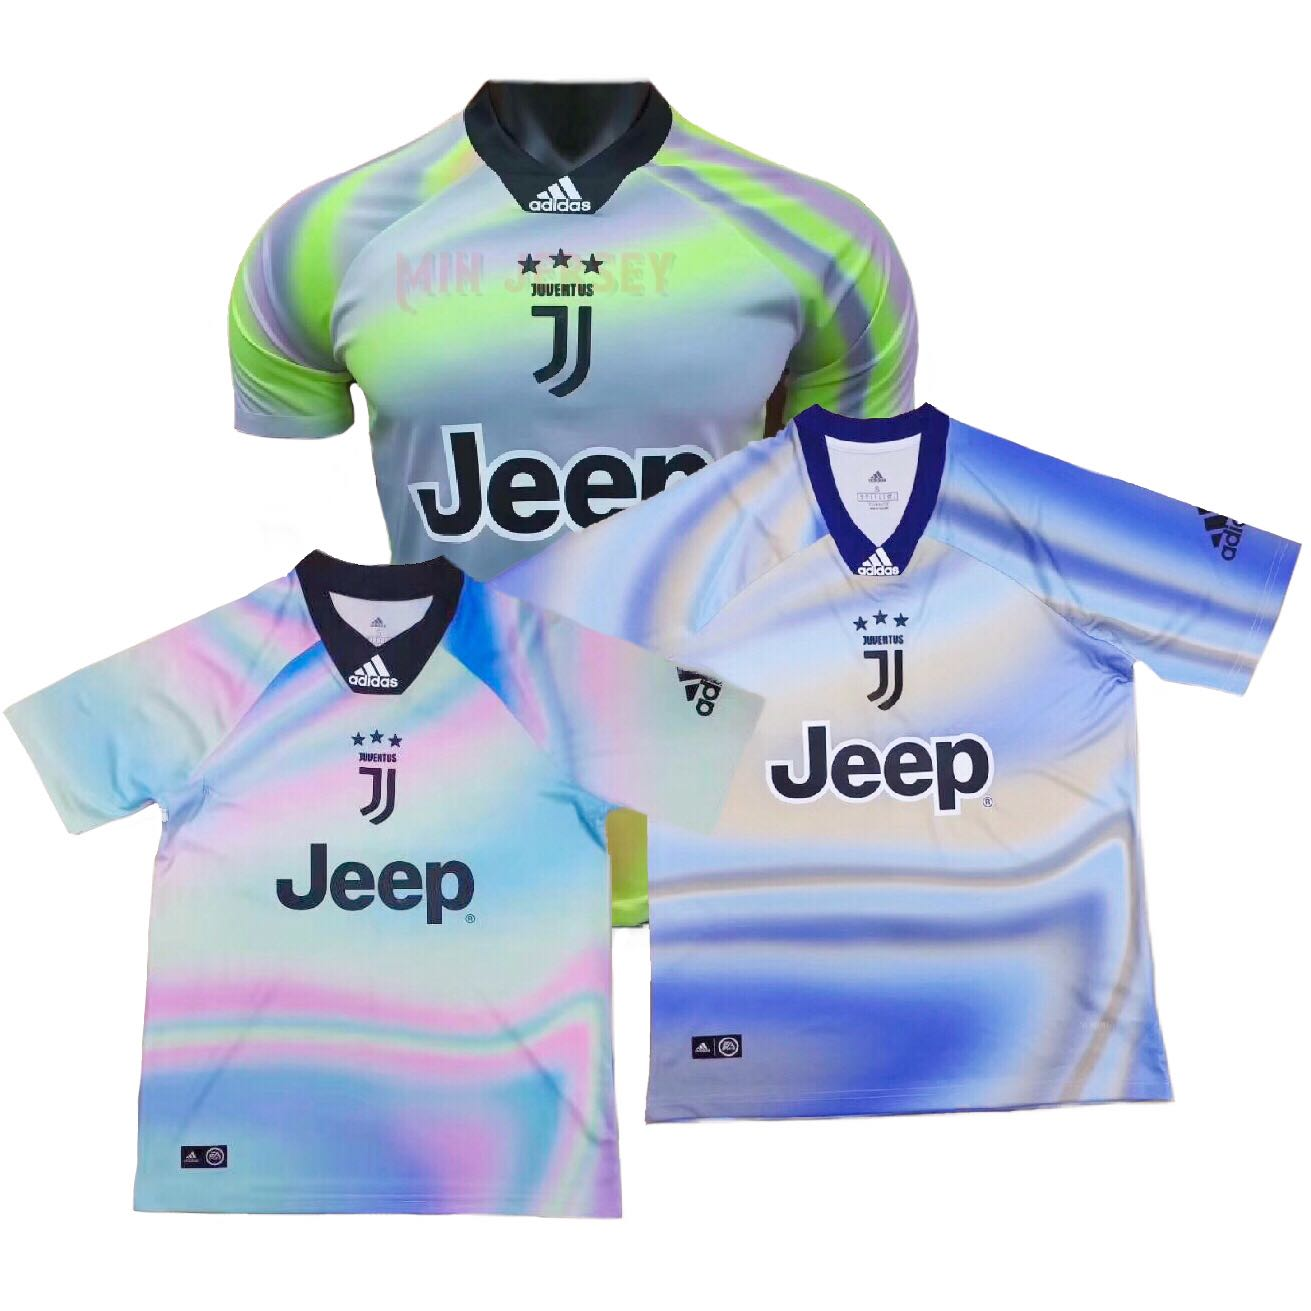 newest a3132 425eb 2018 Juventus limited edition kits